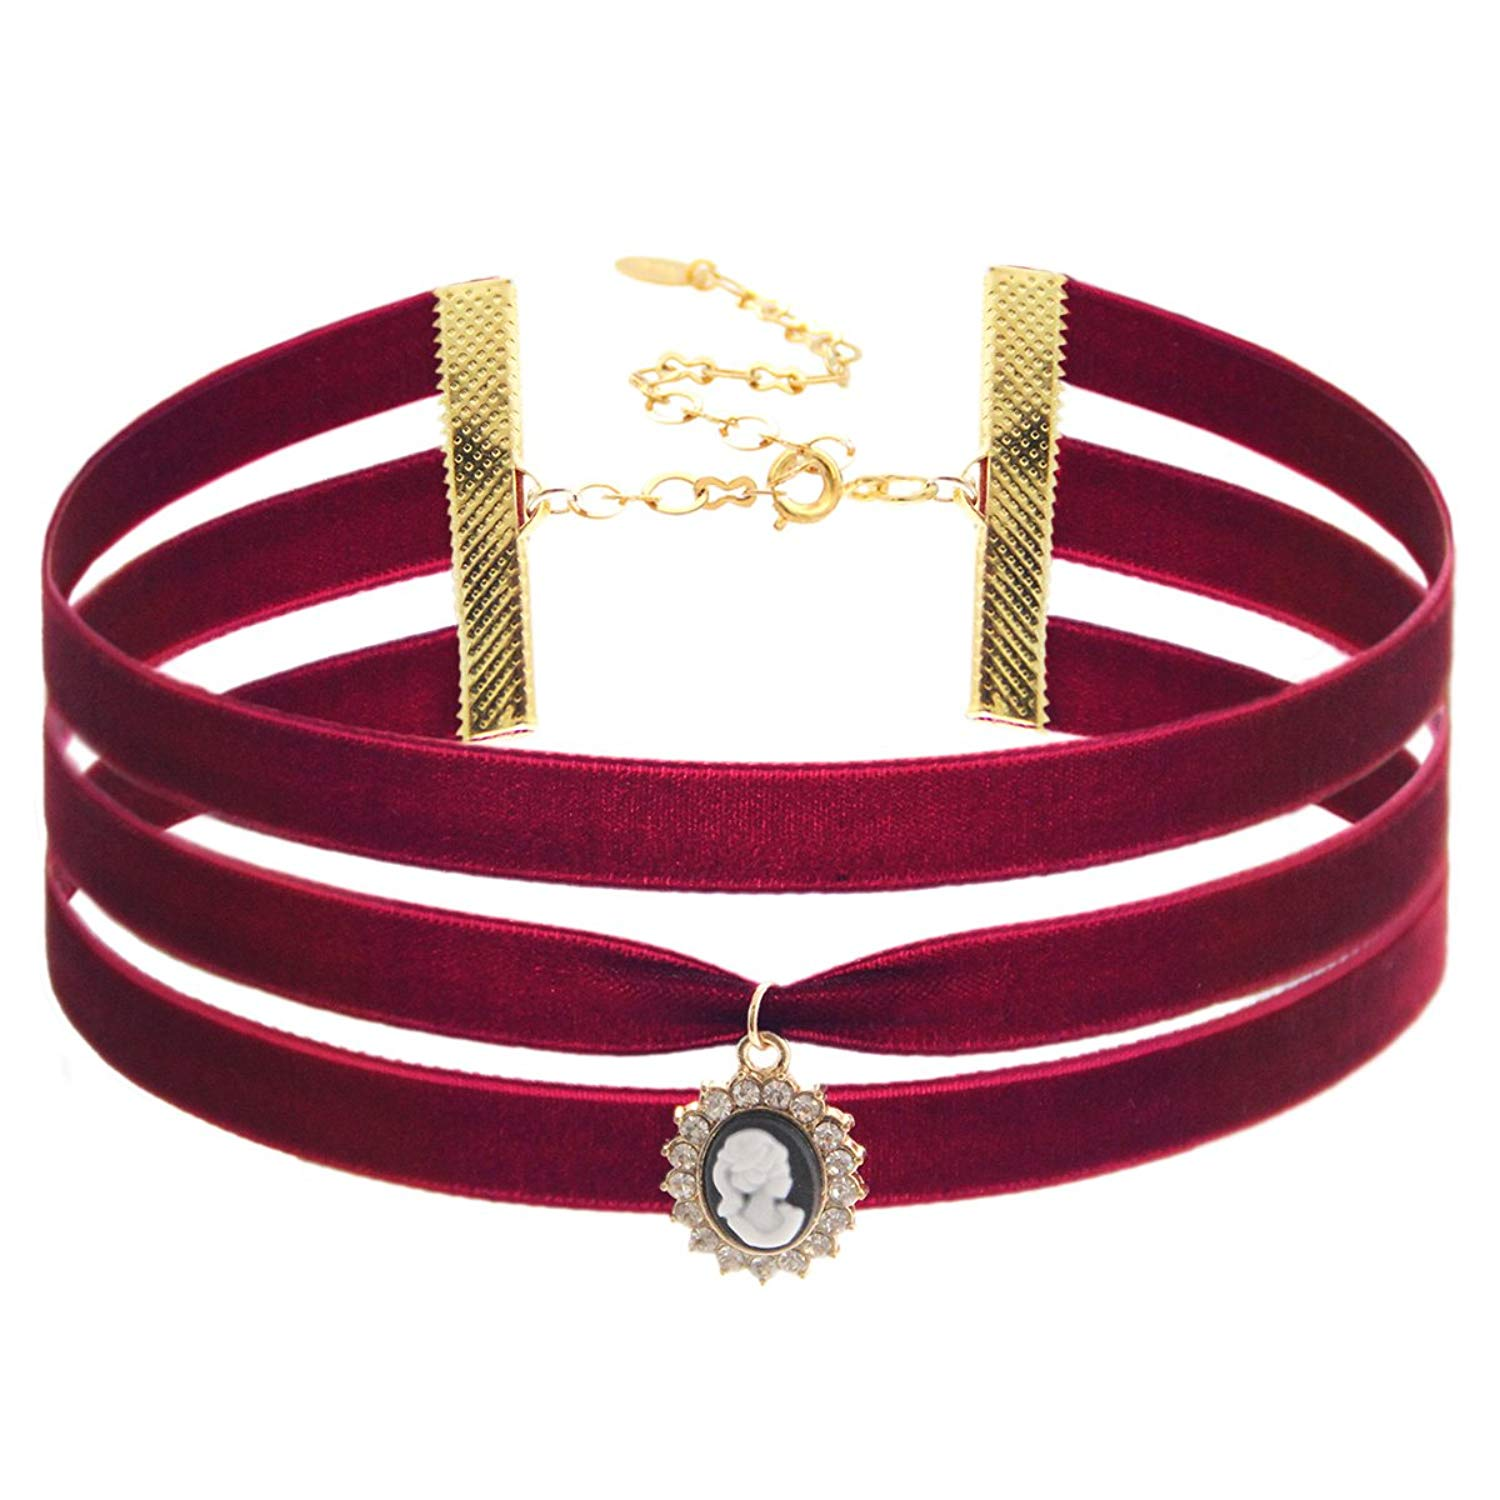 """Choker Necklace Three Strand Maroon Velvet Cameo Choker <br> 18K Gold Plated Closure.Length: 11"""" with 4"""" extender. Width: 30mm. Pendant Size: 15x20 mm."""